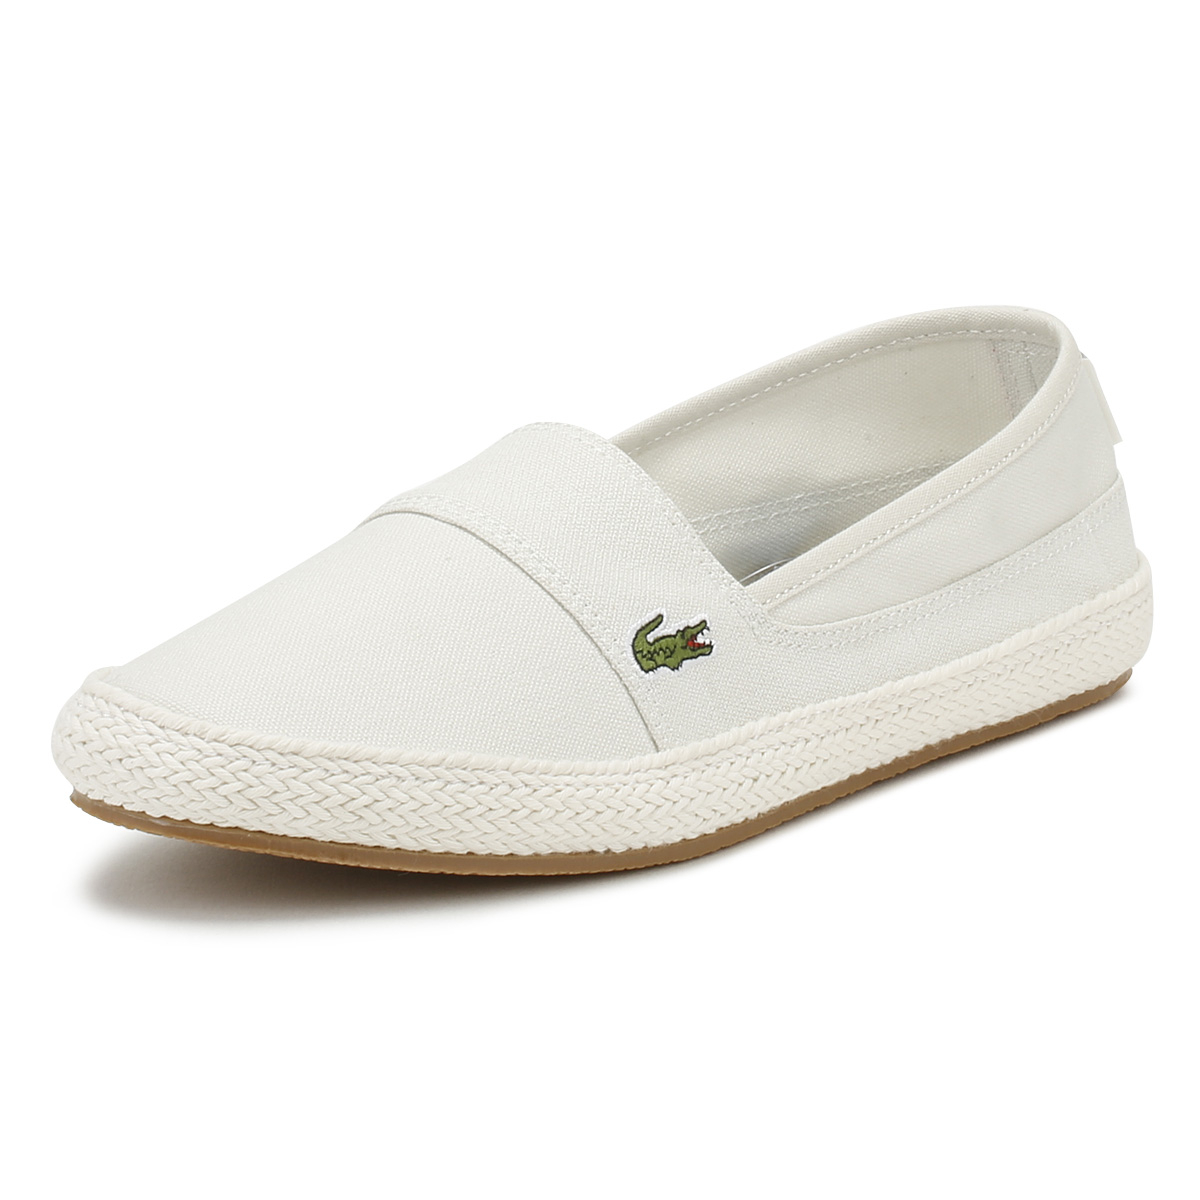 5f405511ddcbf2 Lacoste Womens Flats White   Pink Marice 218 1 Espadrilles Casual ...